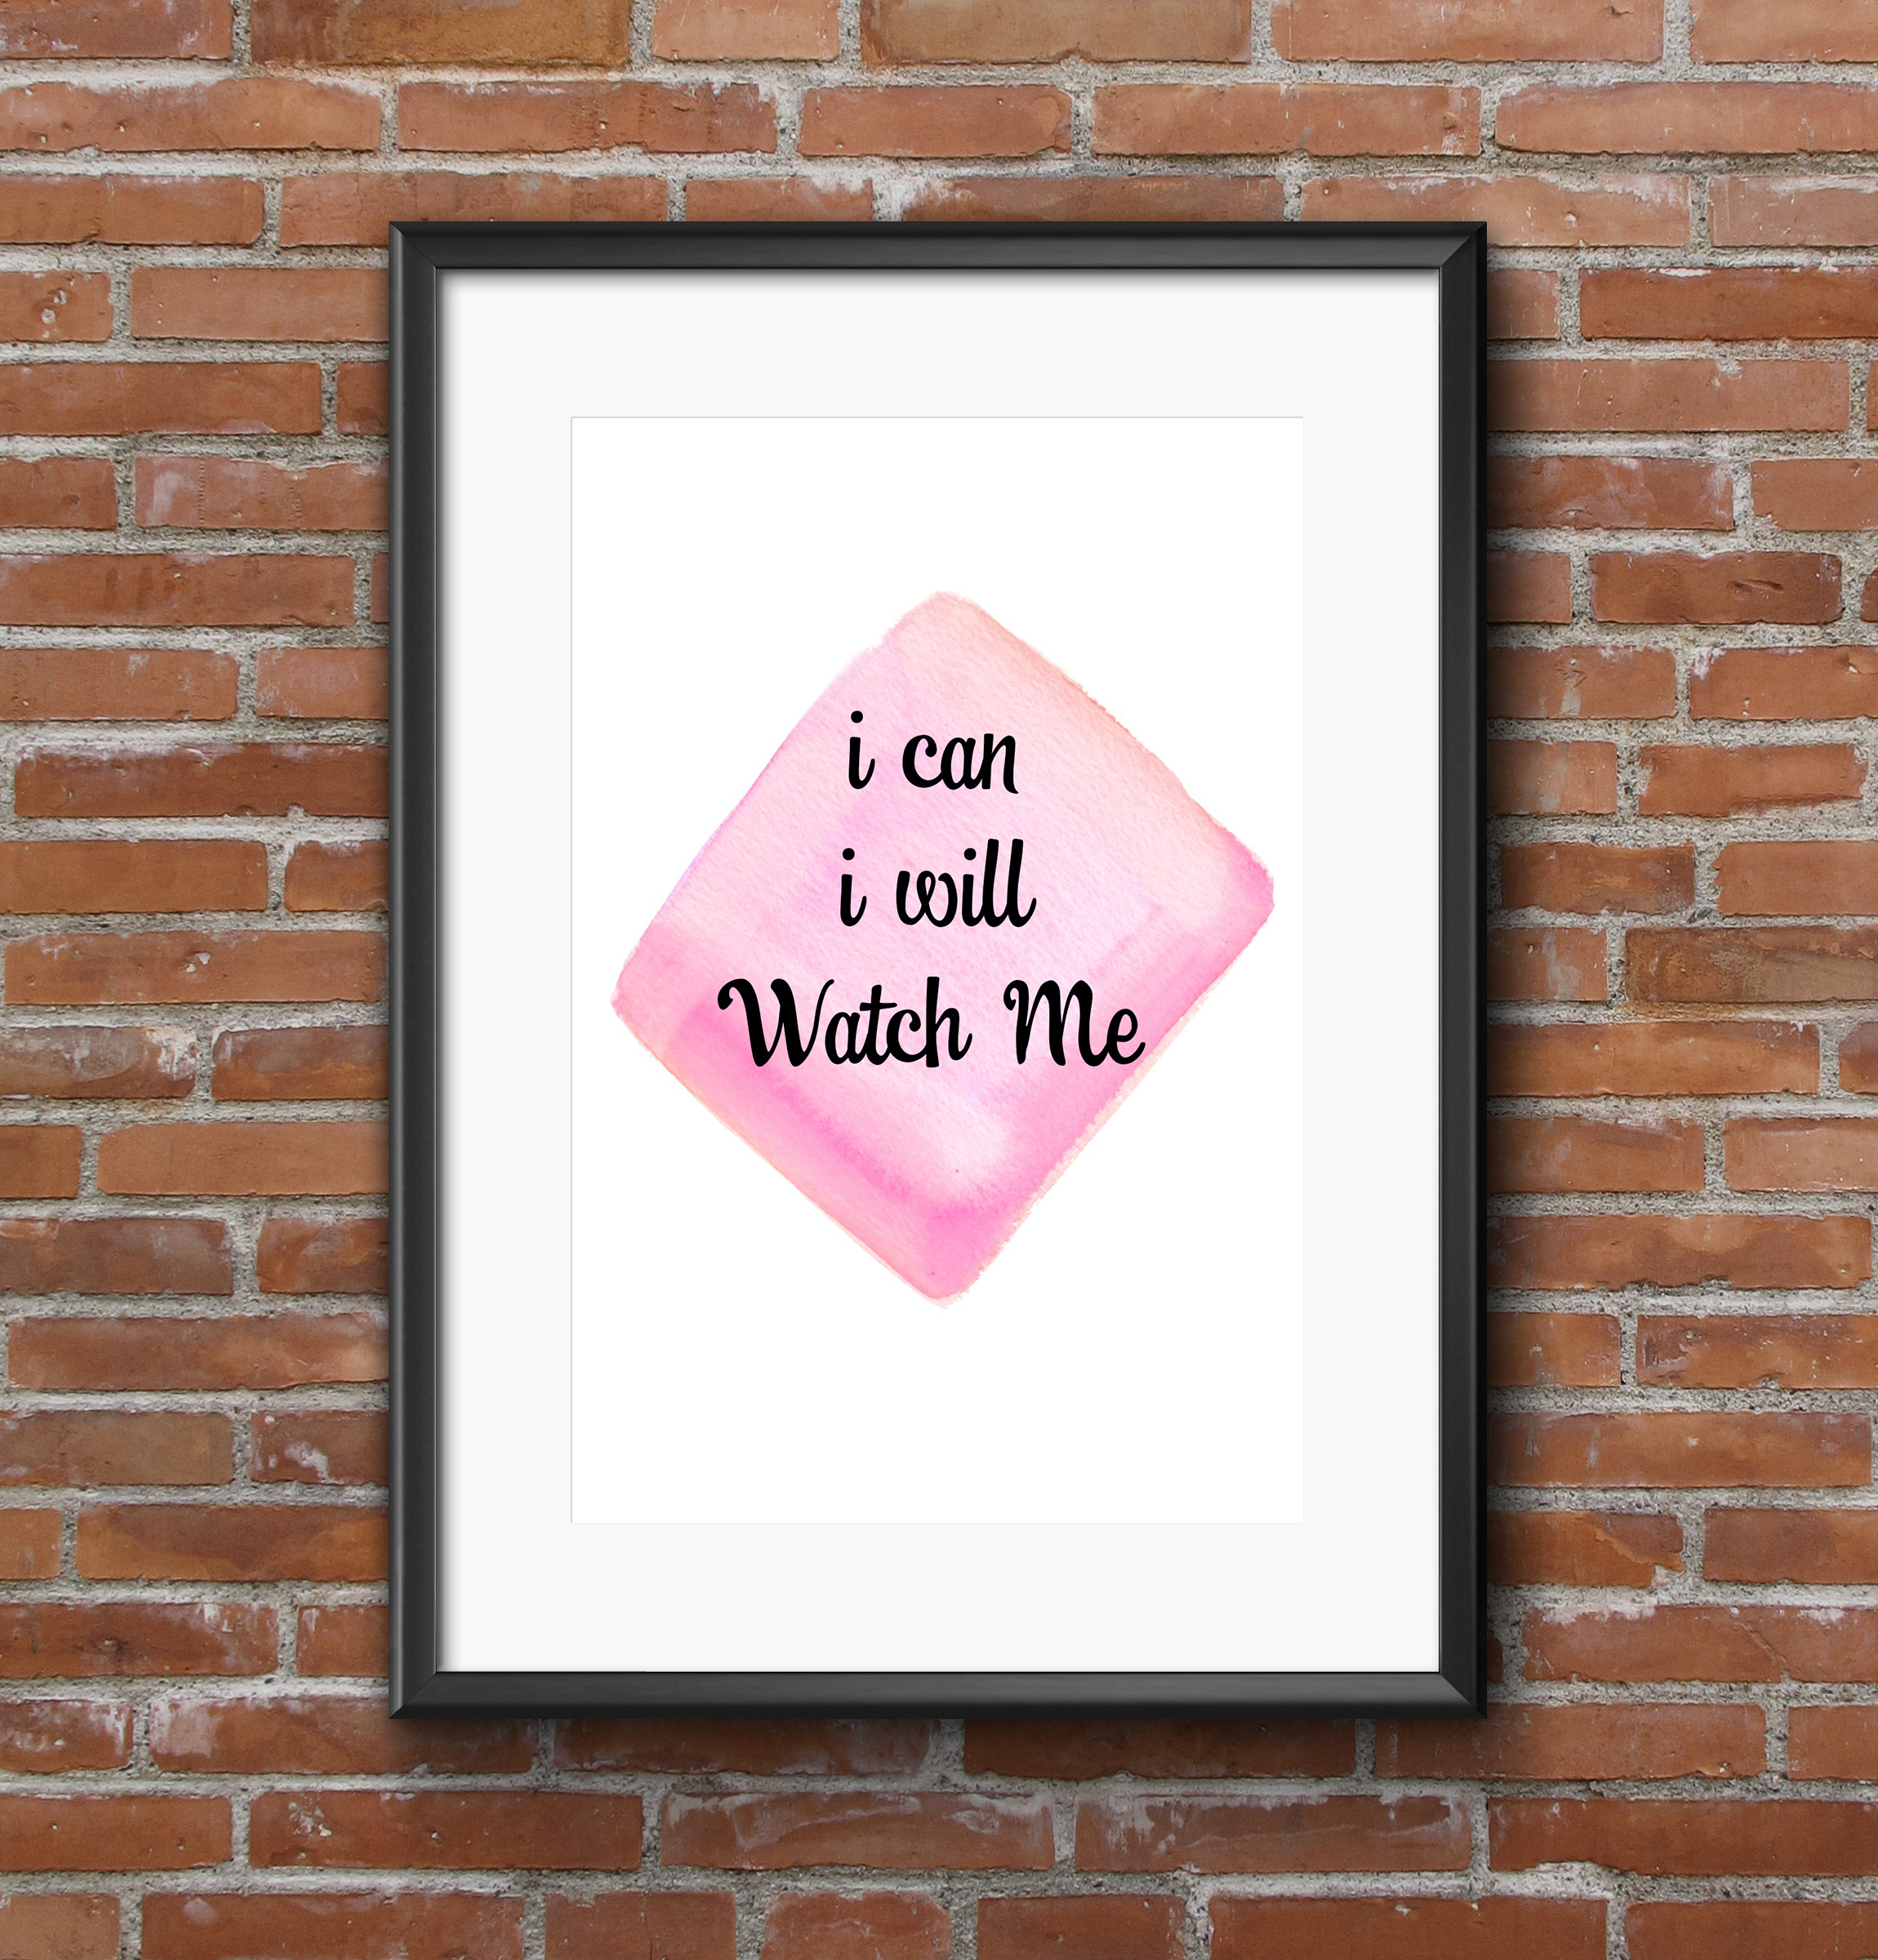 I can i will watch me framed